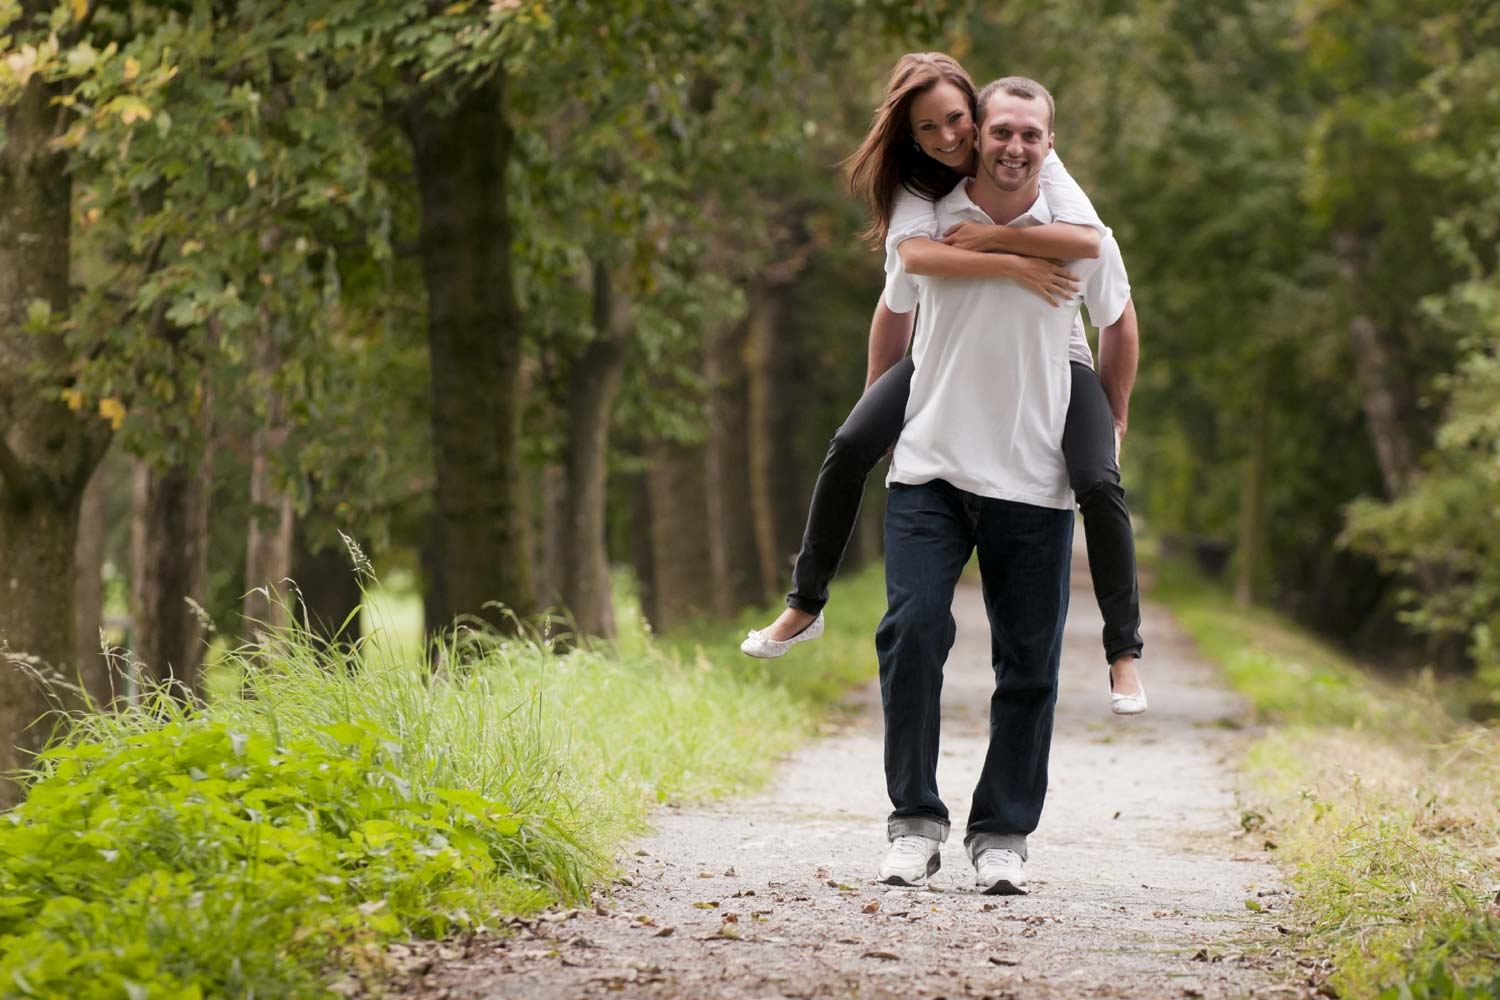 Christian matchmaking sites